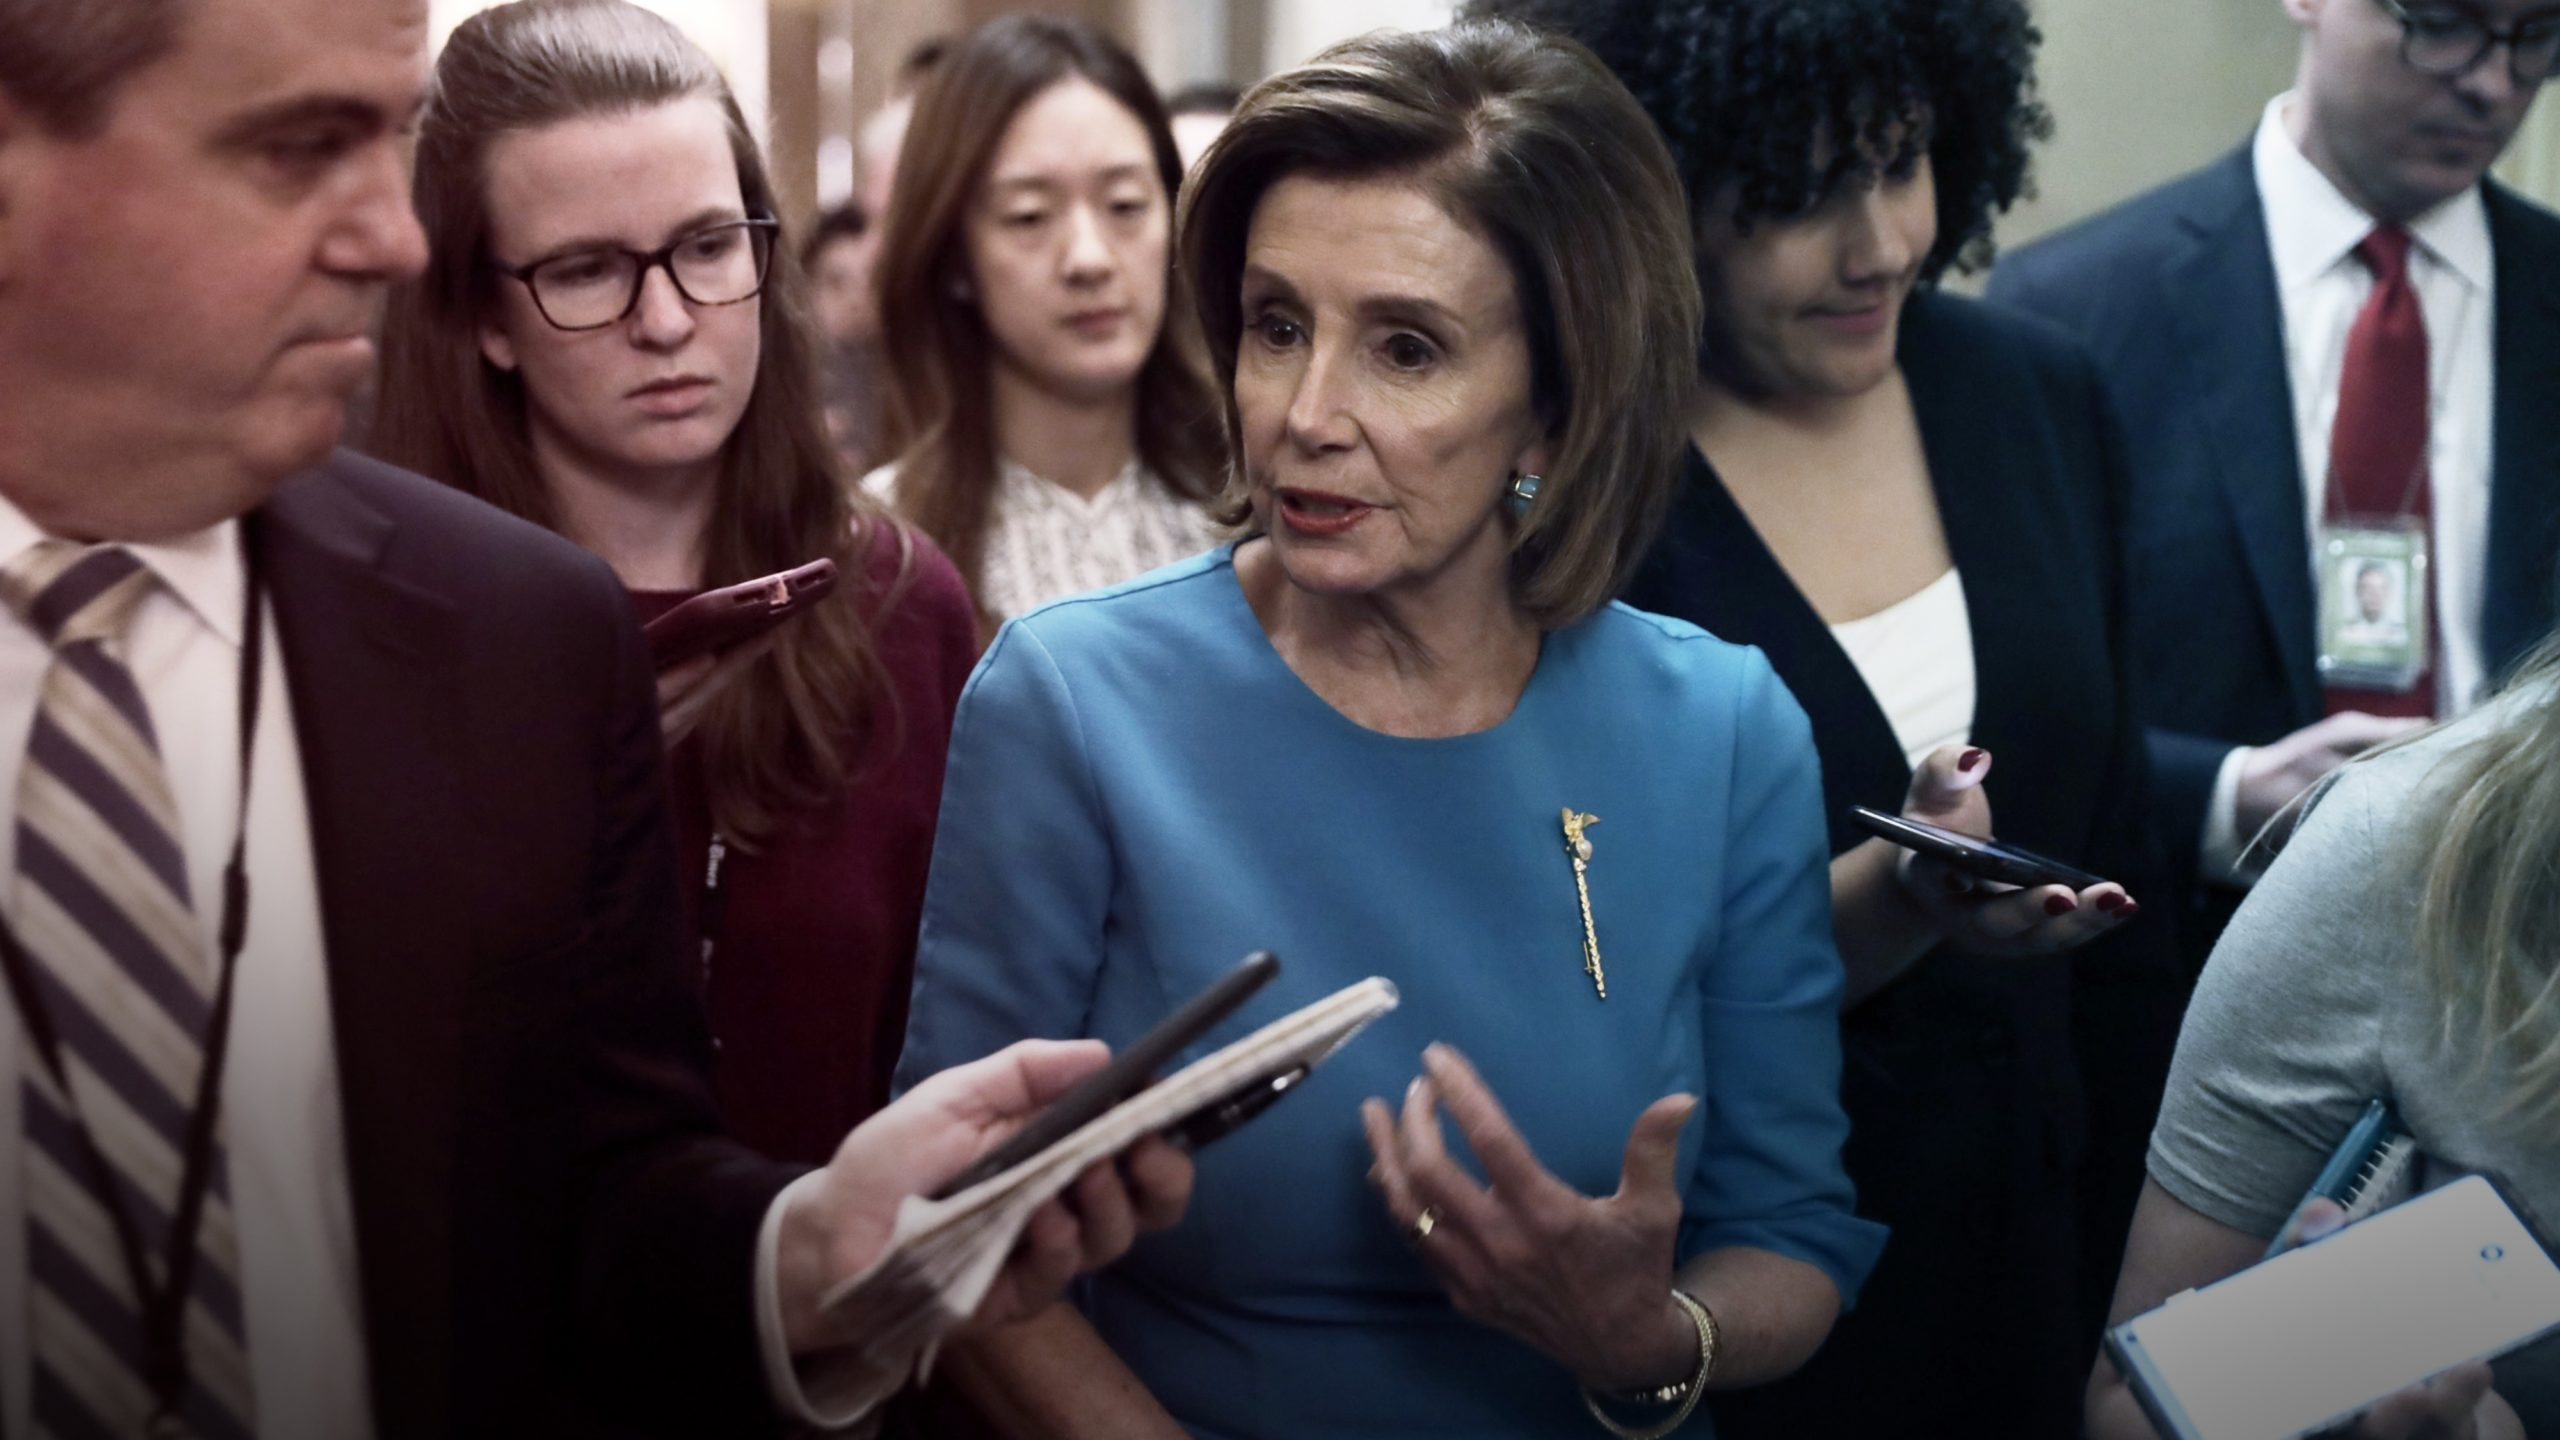 Mike Huckabee: Dems Exploiting a National Crisis To Push for Abortion Funding | Harbingers Daily